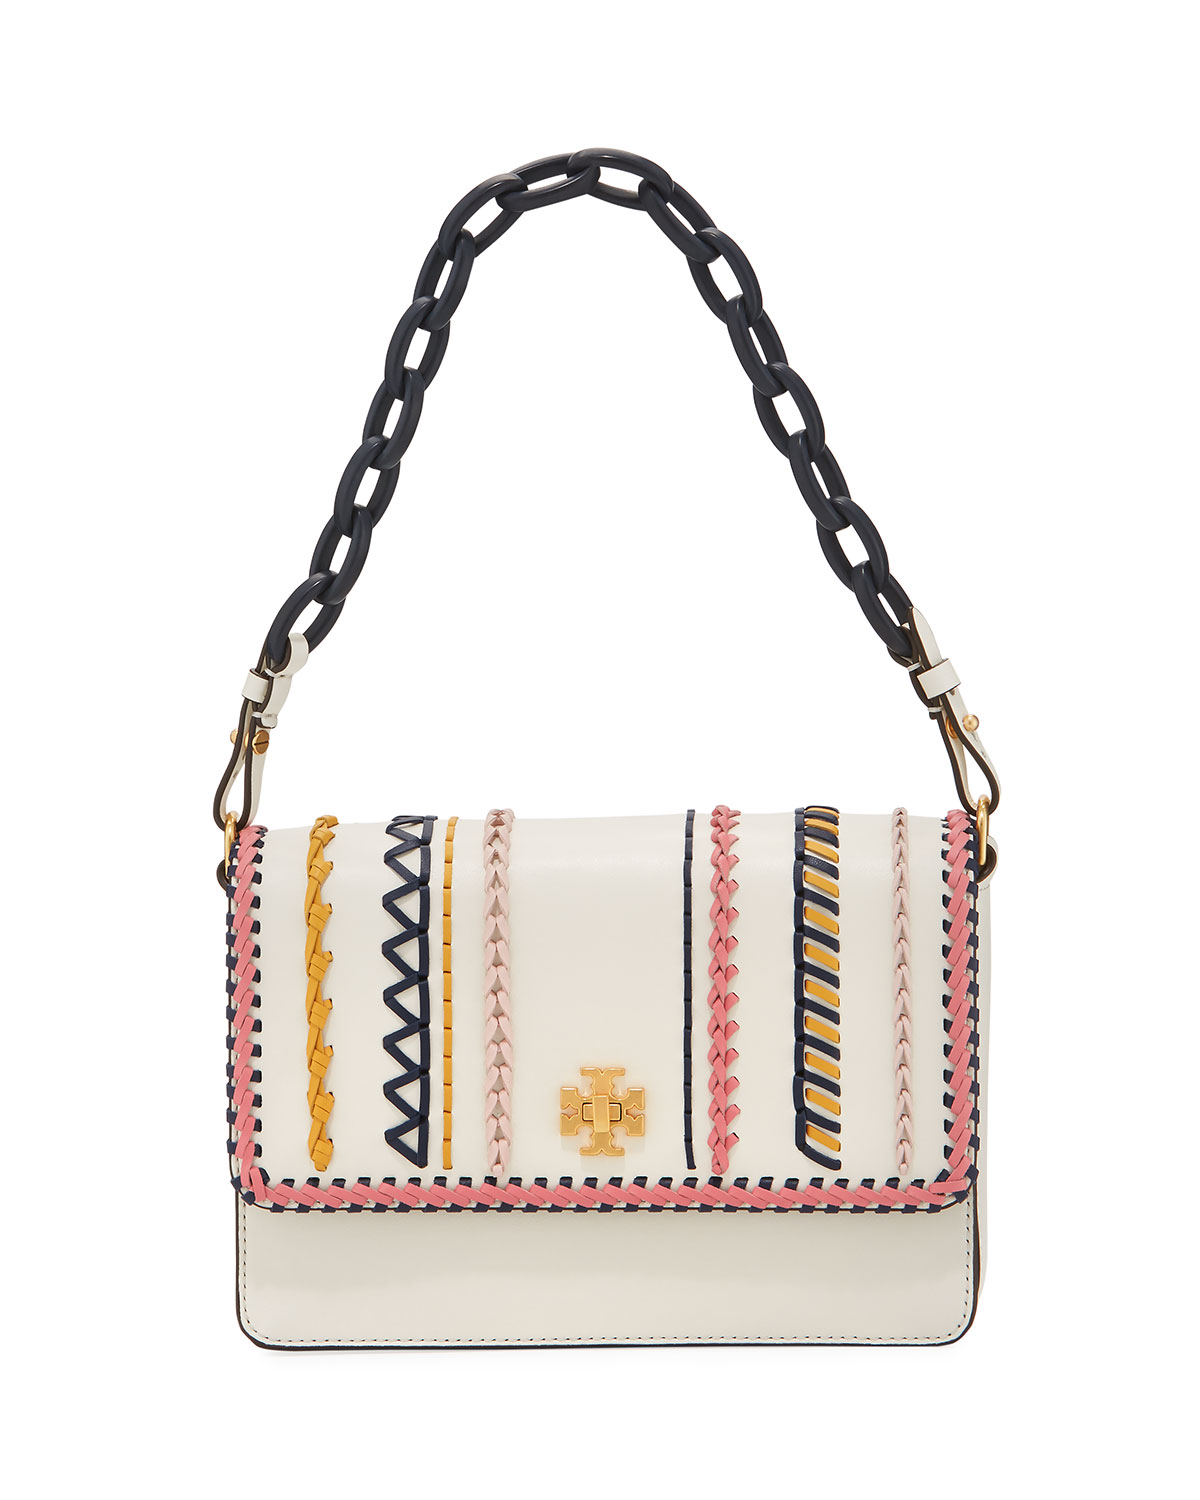 cb012f81cd8d1 Tory Burch Kira Whip-Stitch Shoulder Bag